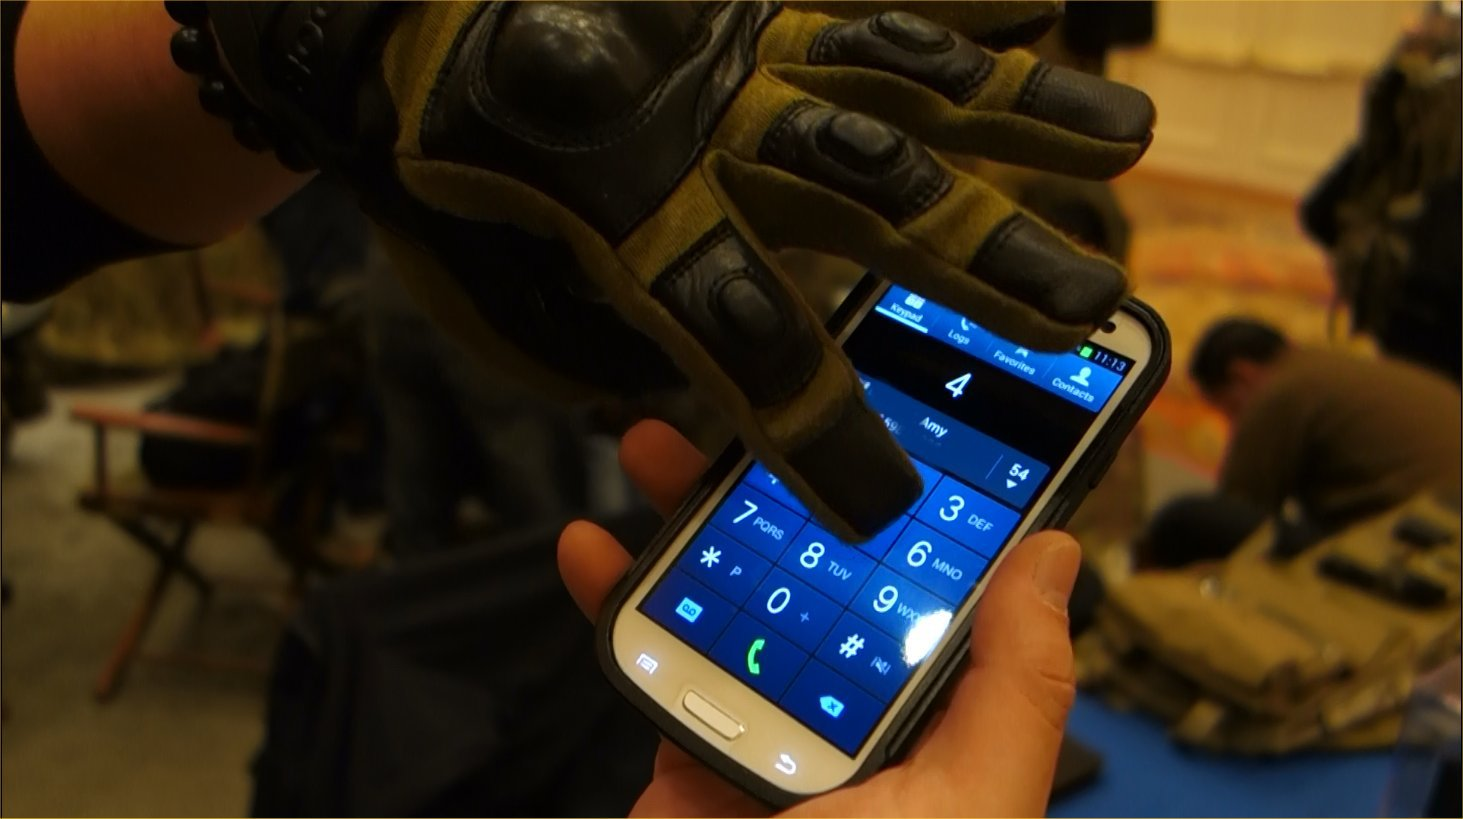 Condor Syncro Hard-Knuckle Tactical Glove with TouchTec Nanotechnology: Touchscreen-Friendly Tactical Shooting Gloves Allow You to Operate Smartphone and Tablet Computer! (Video!)